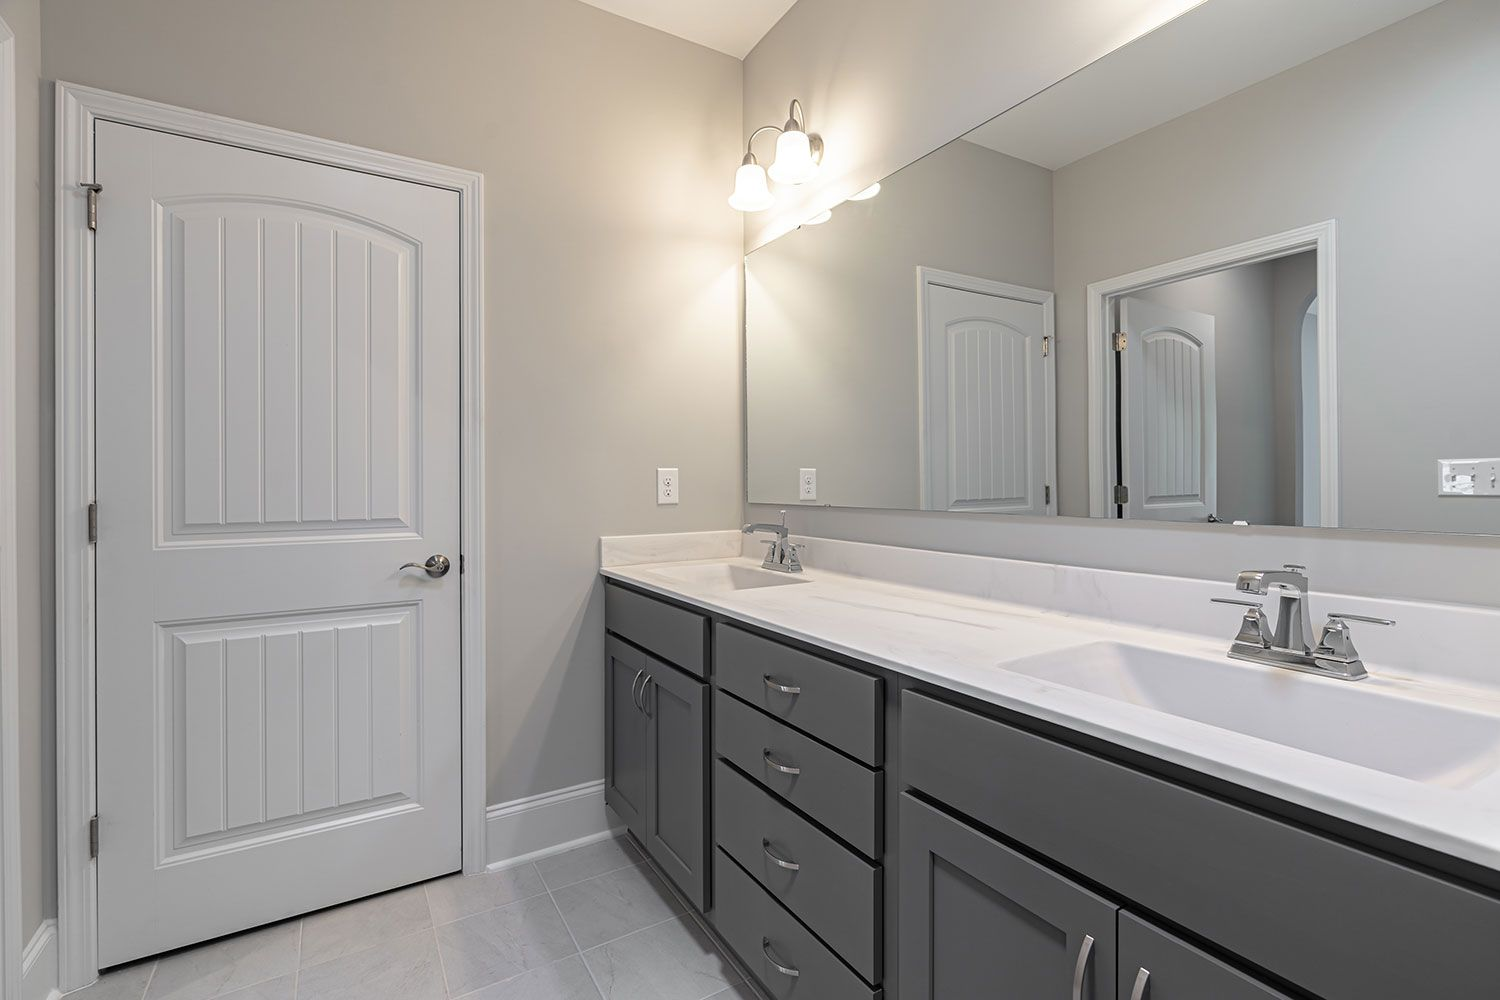 Bathroom featured in the Portico Craftsman By McKee Homes in Wilmington, NC